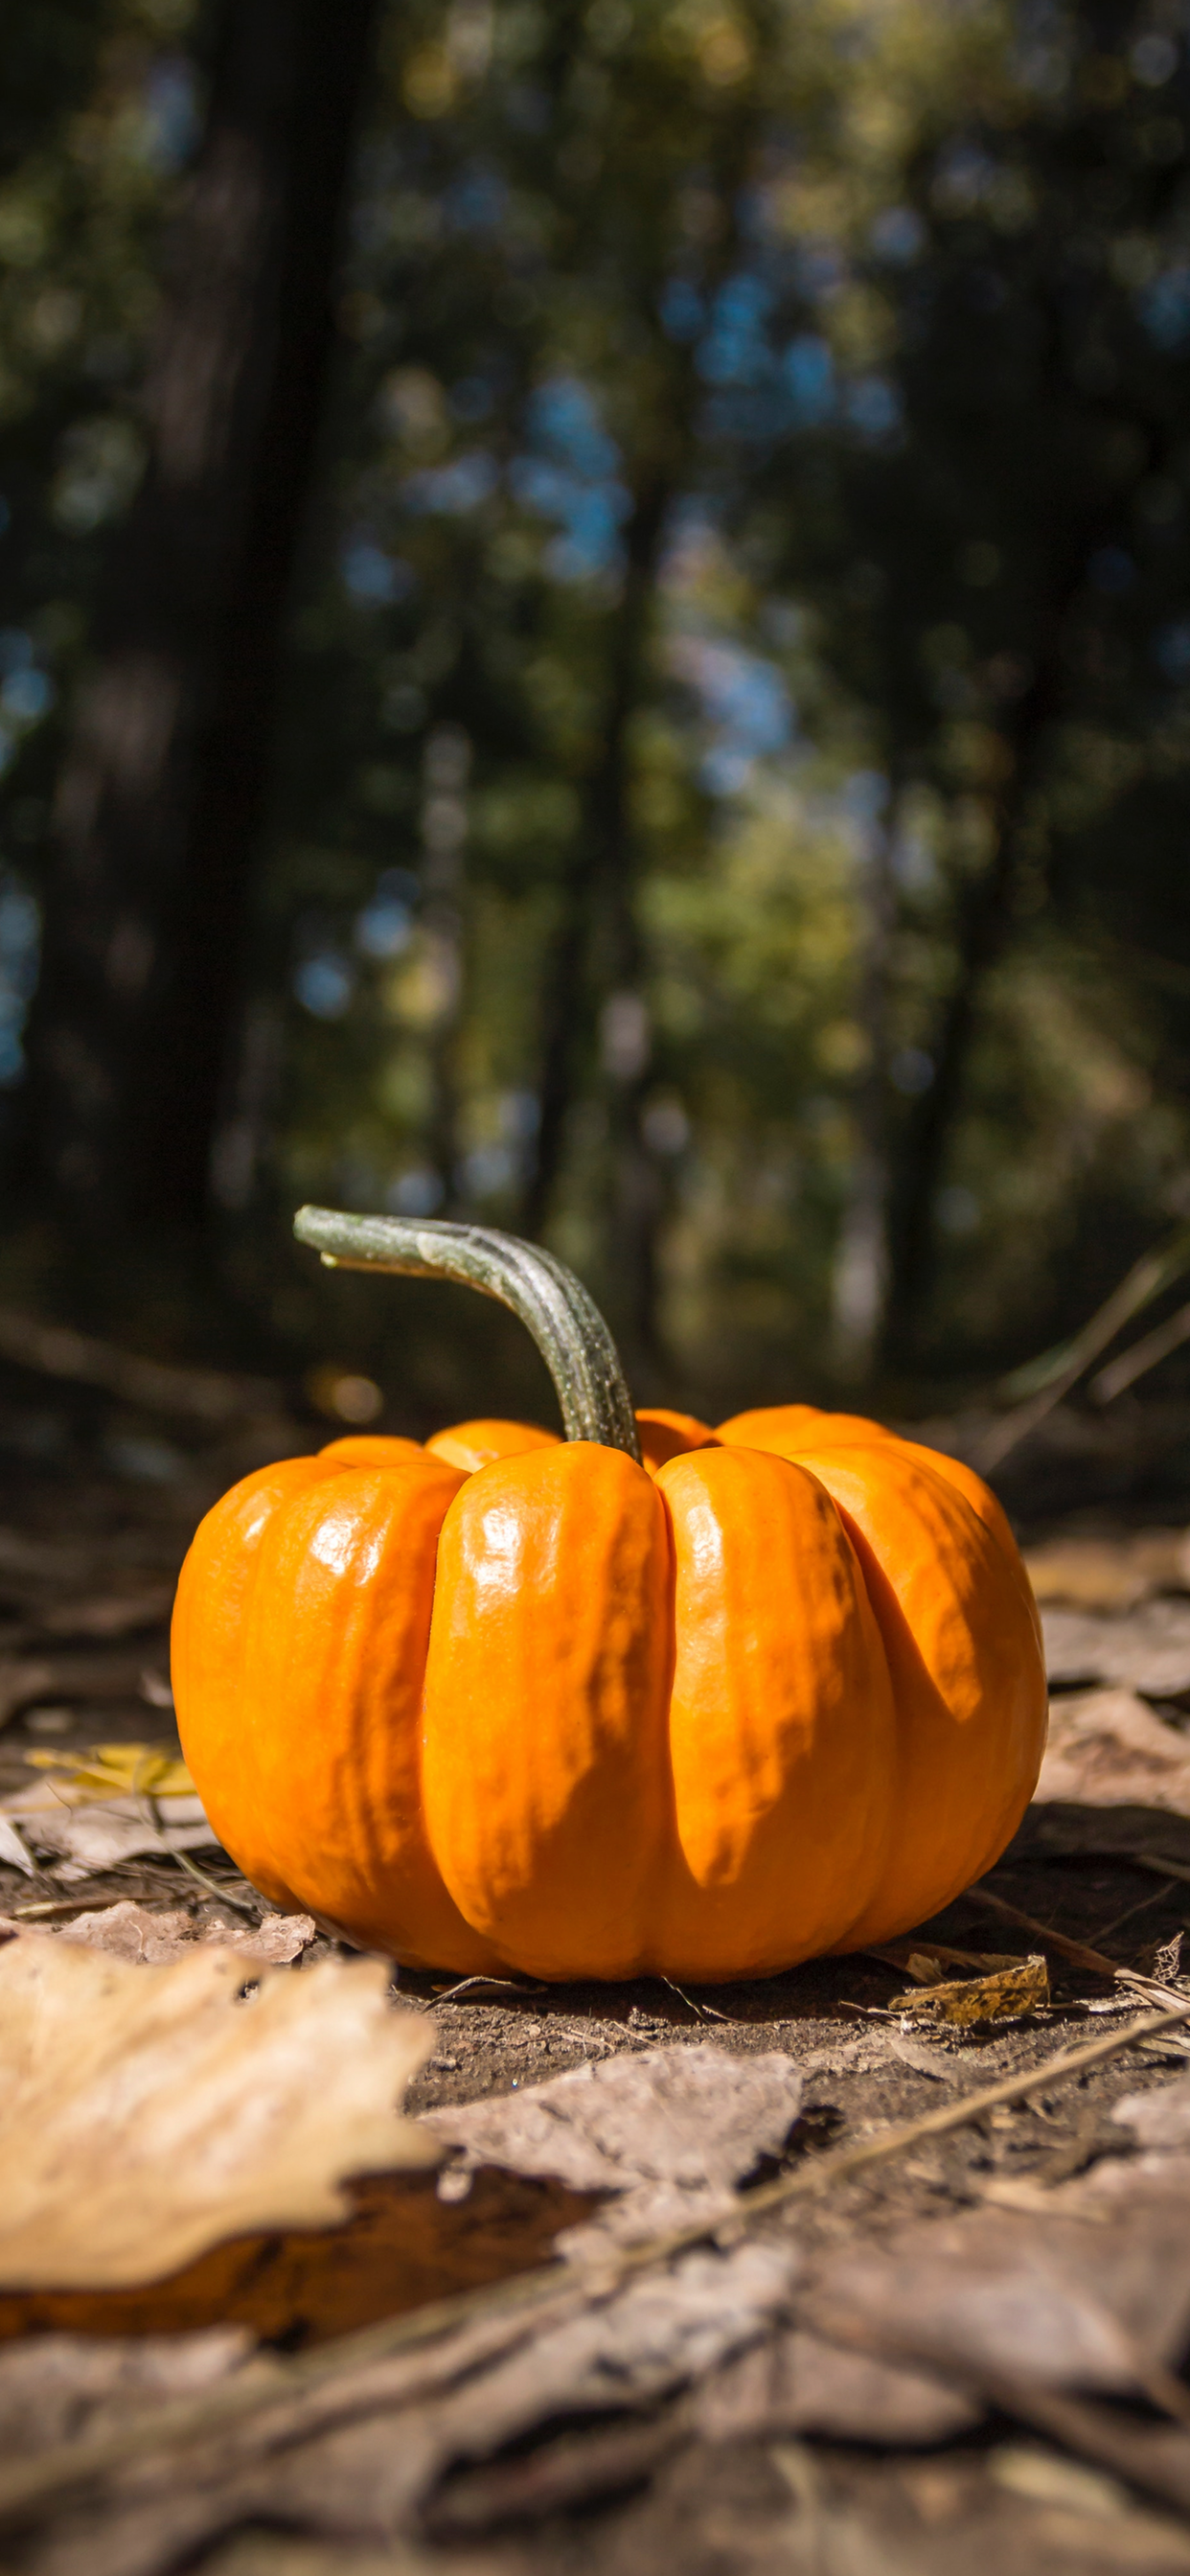 Pumpkin Wallpapers For Iphone Download Them Now